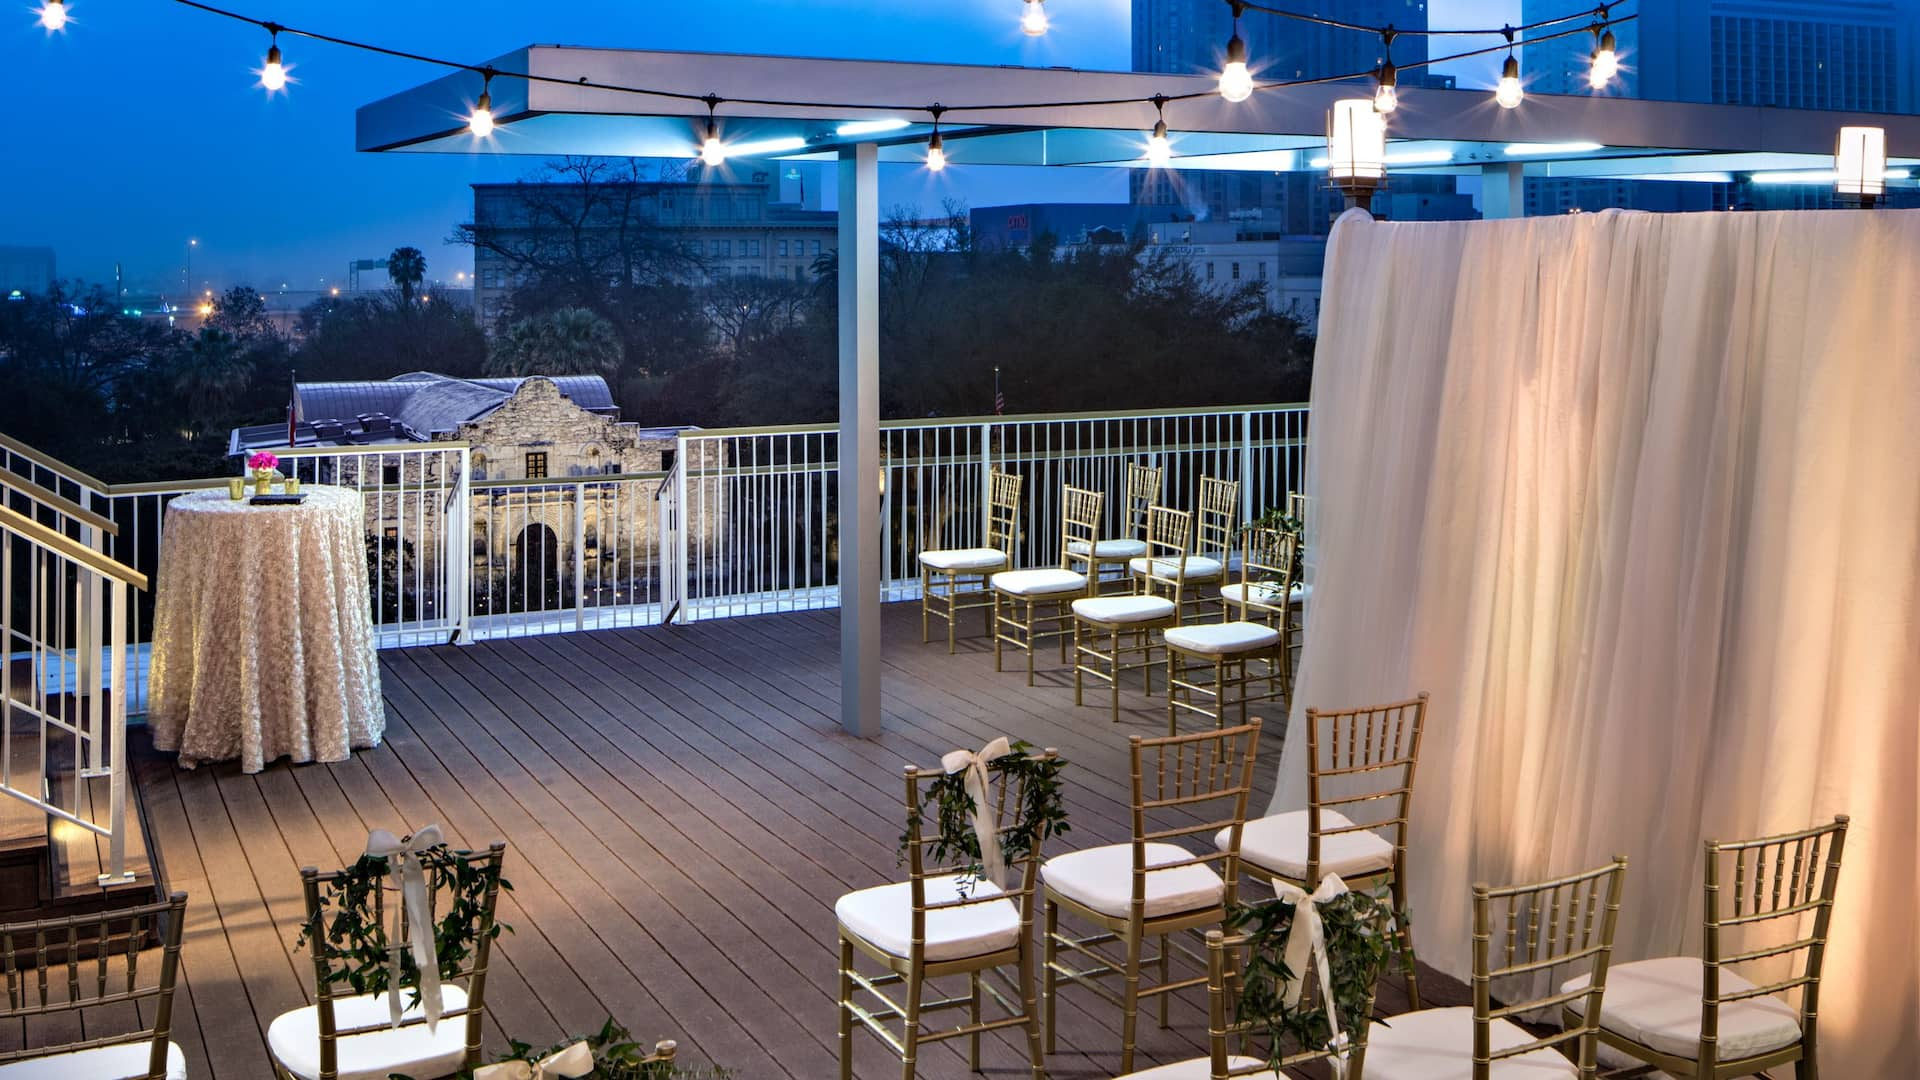 LVT Outdoor Wedding Ceremony Venue Hyatt Regency San Antonio River Walk